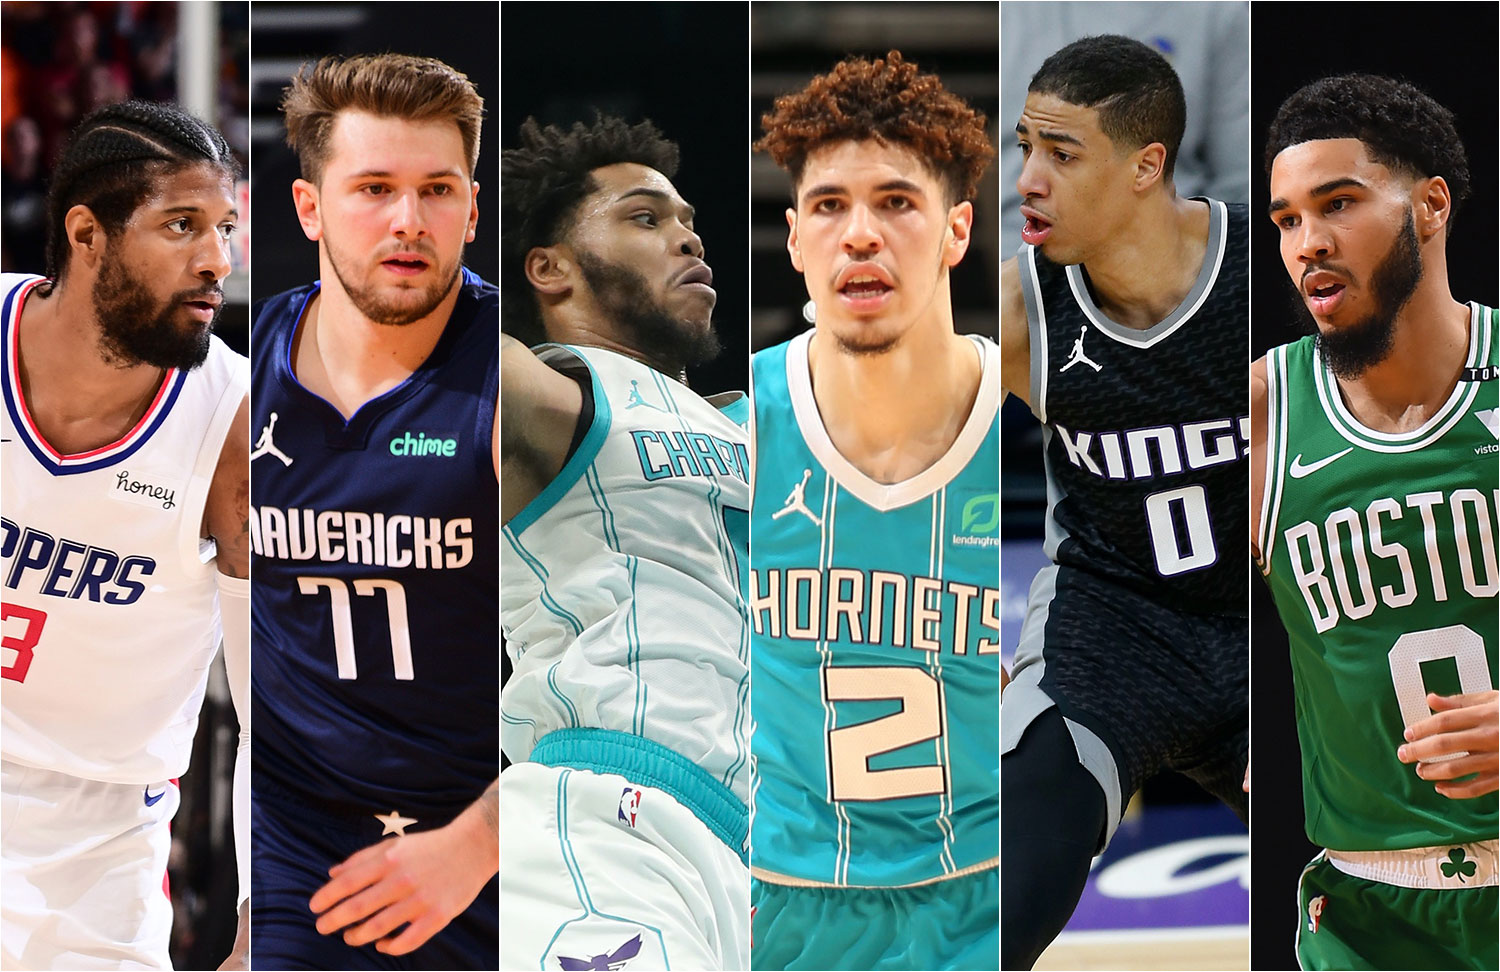 It's that time again! Plays 60-41 in the NBA's countdown of the Top 100 plays of the 2020-21 season. Which ones you can find on Top Shot?